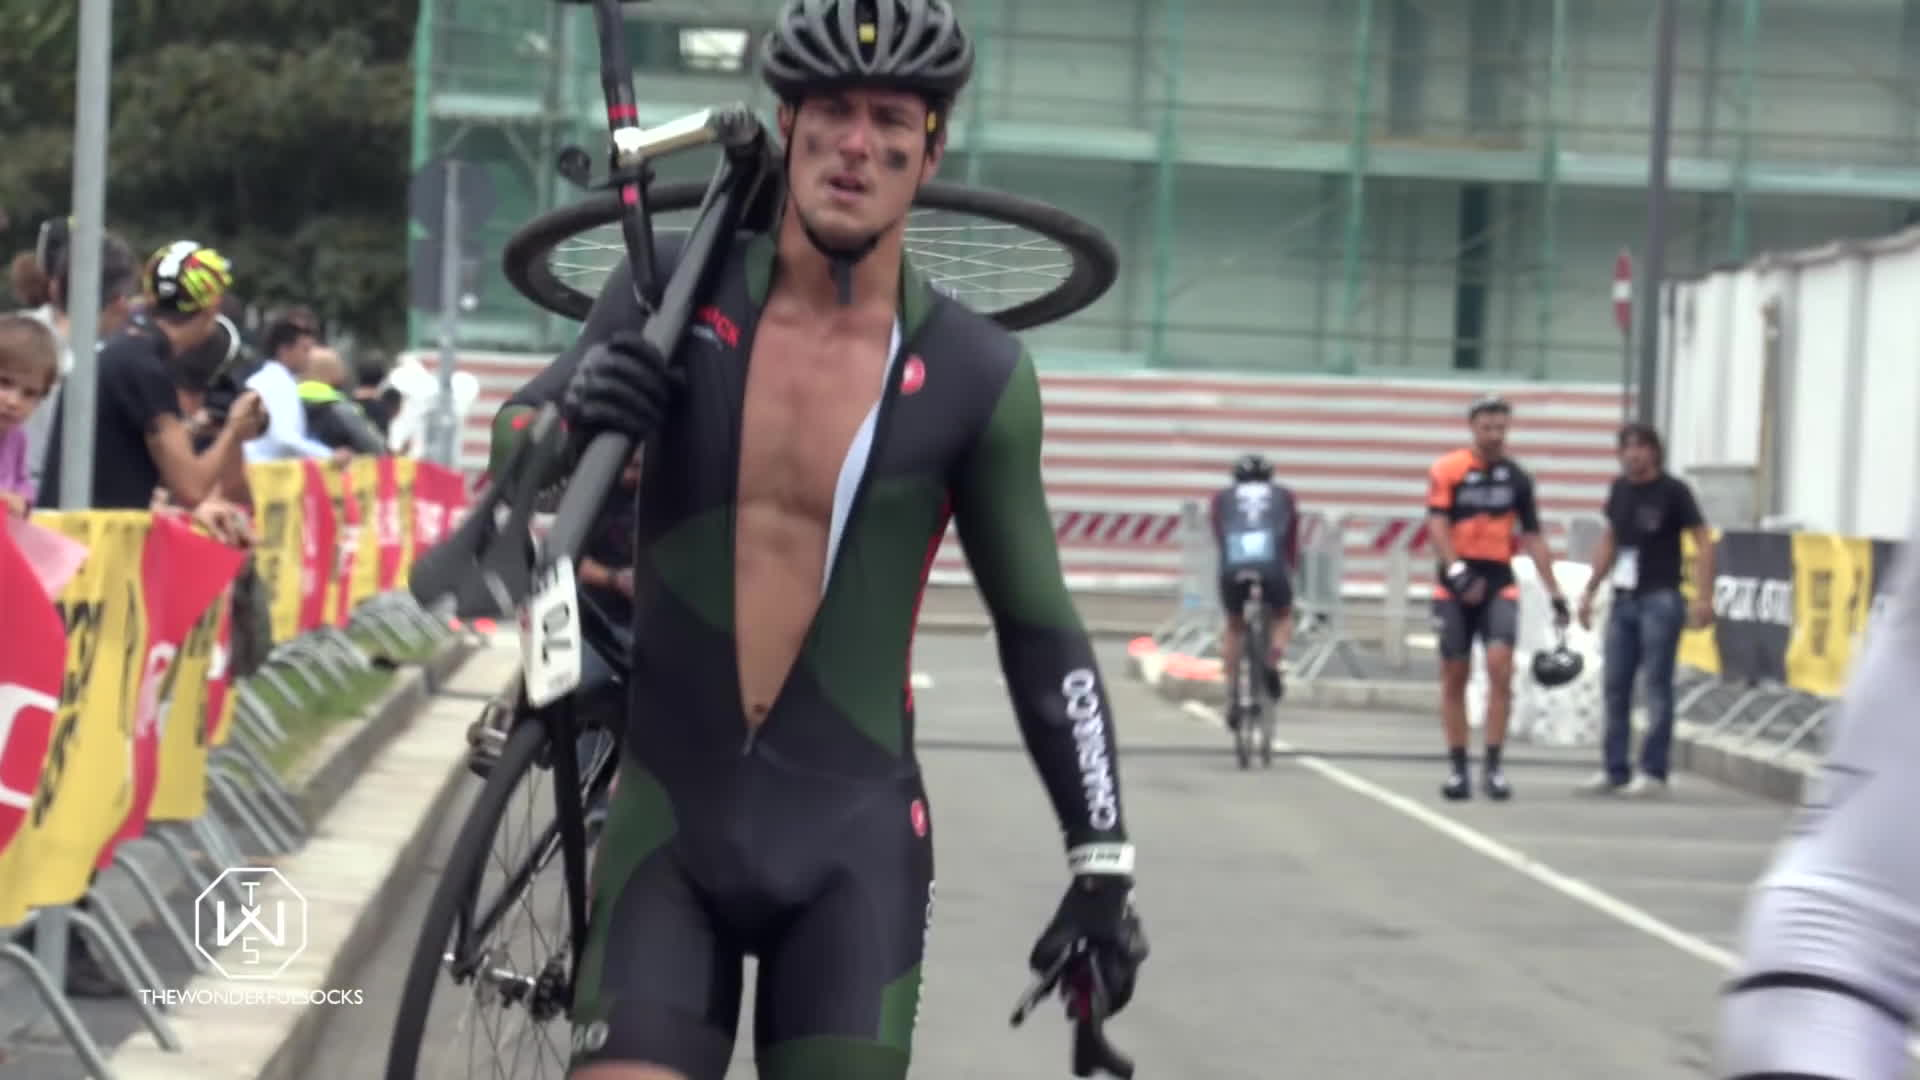 IdiotsFightingThings, PublicFreakout, instant_regret, angry cyclist destroys his bike at red hook milano 2016 GIFs